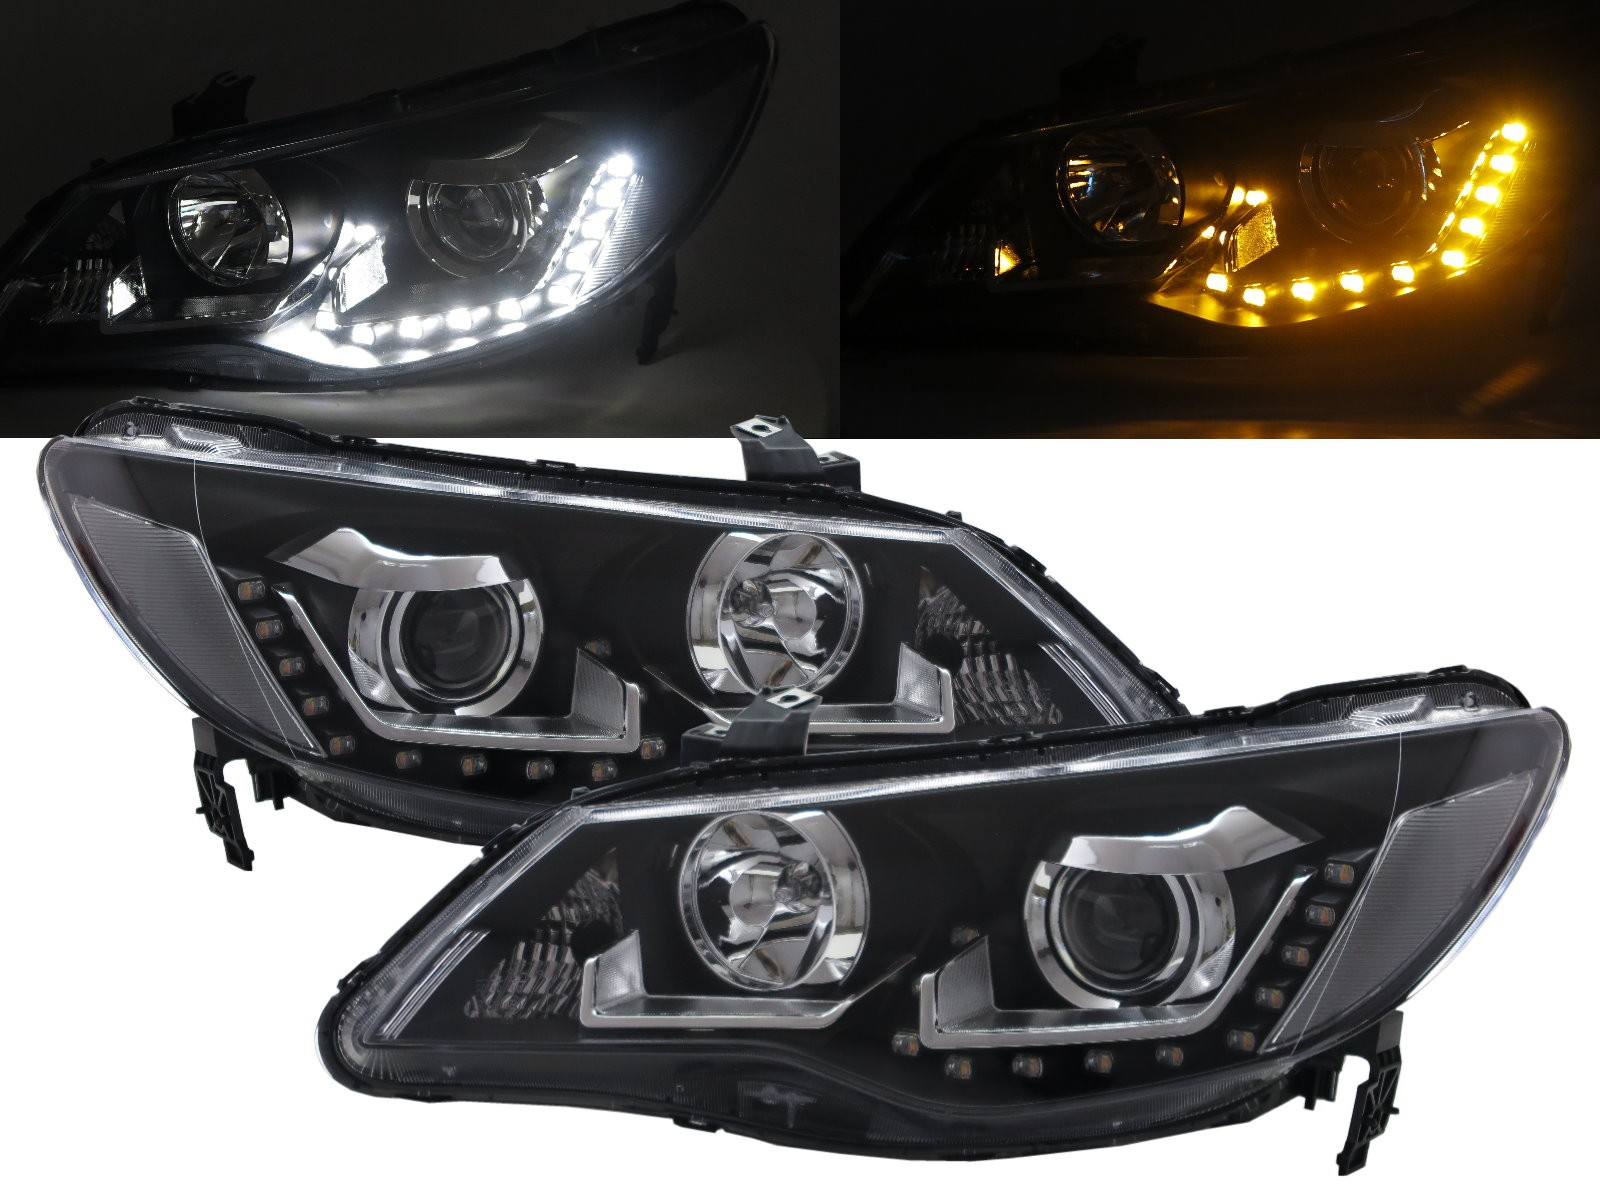 CrazyTheGod CSX 2005-2011 Sedan 4D LED Bar Projector Halogen Headlight Headlamp Black for ACURA LHD